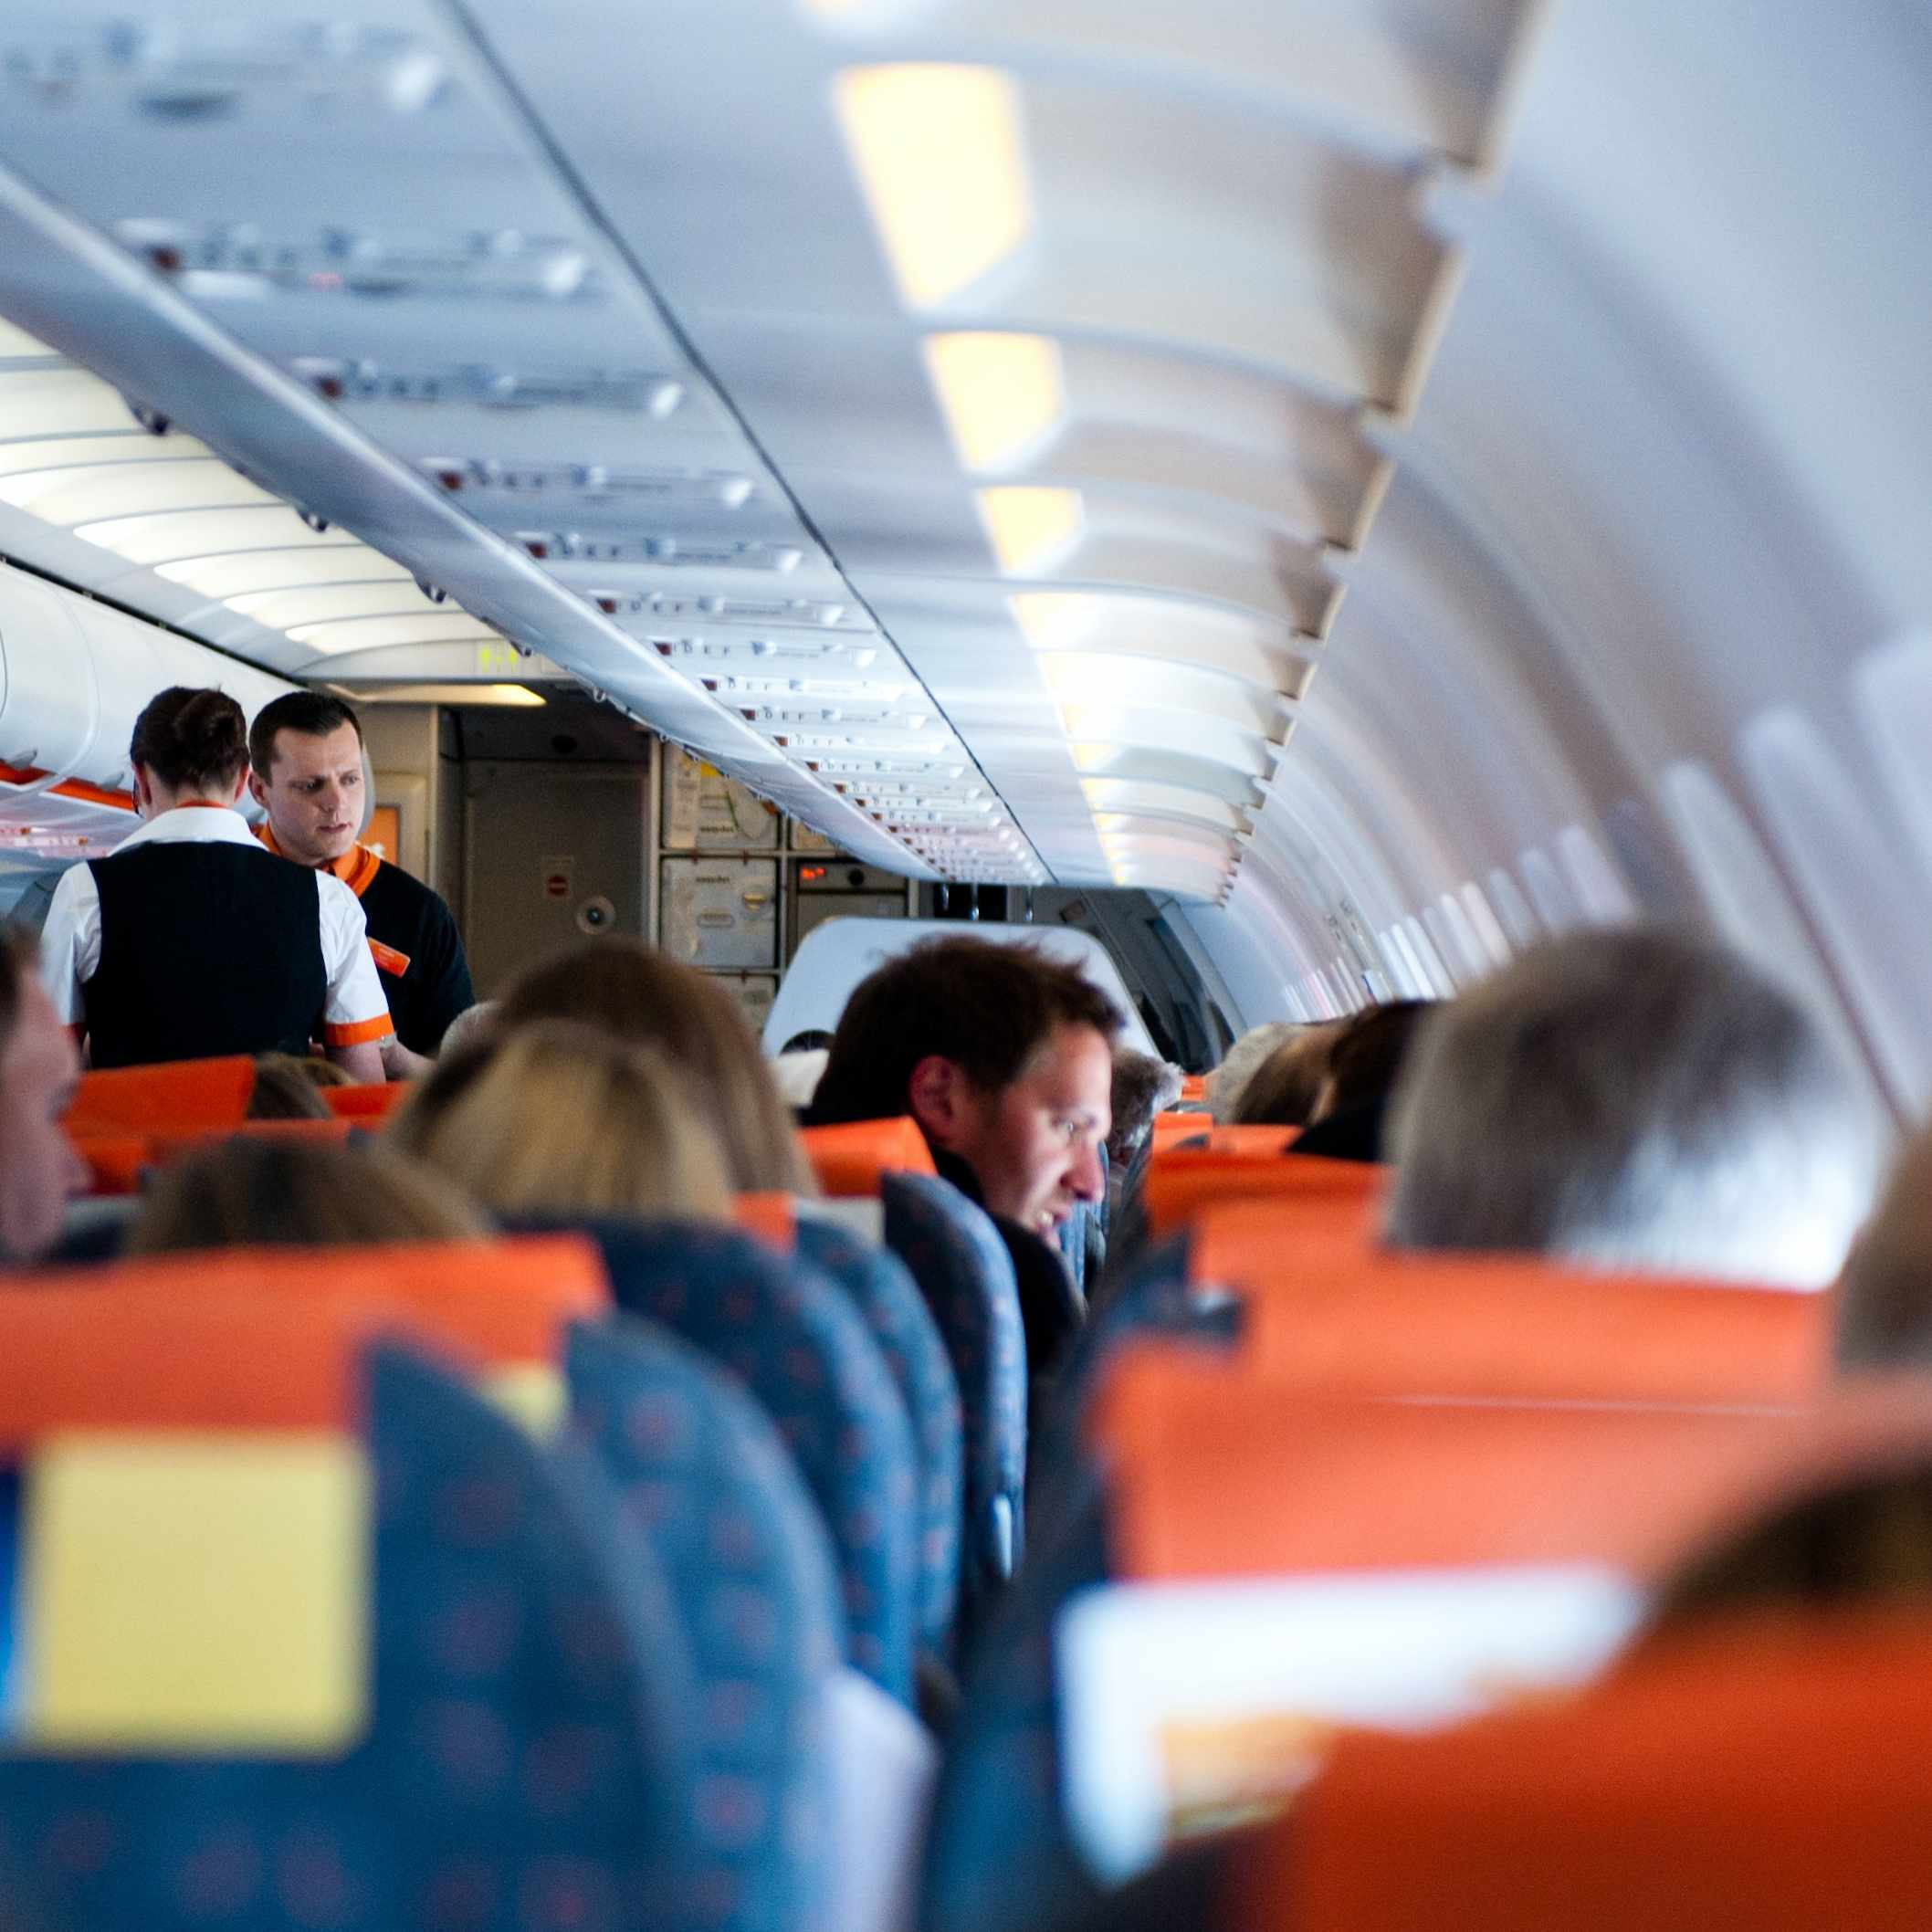 people sitting in their seats on a crowded plane